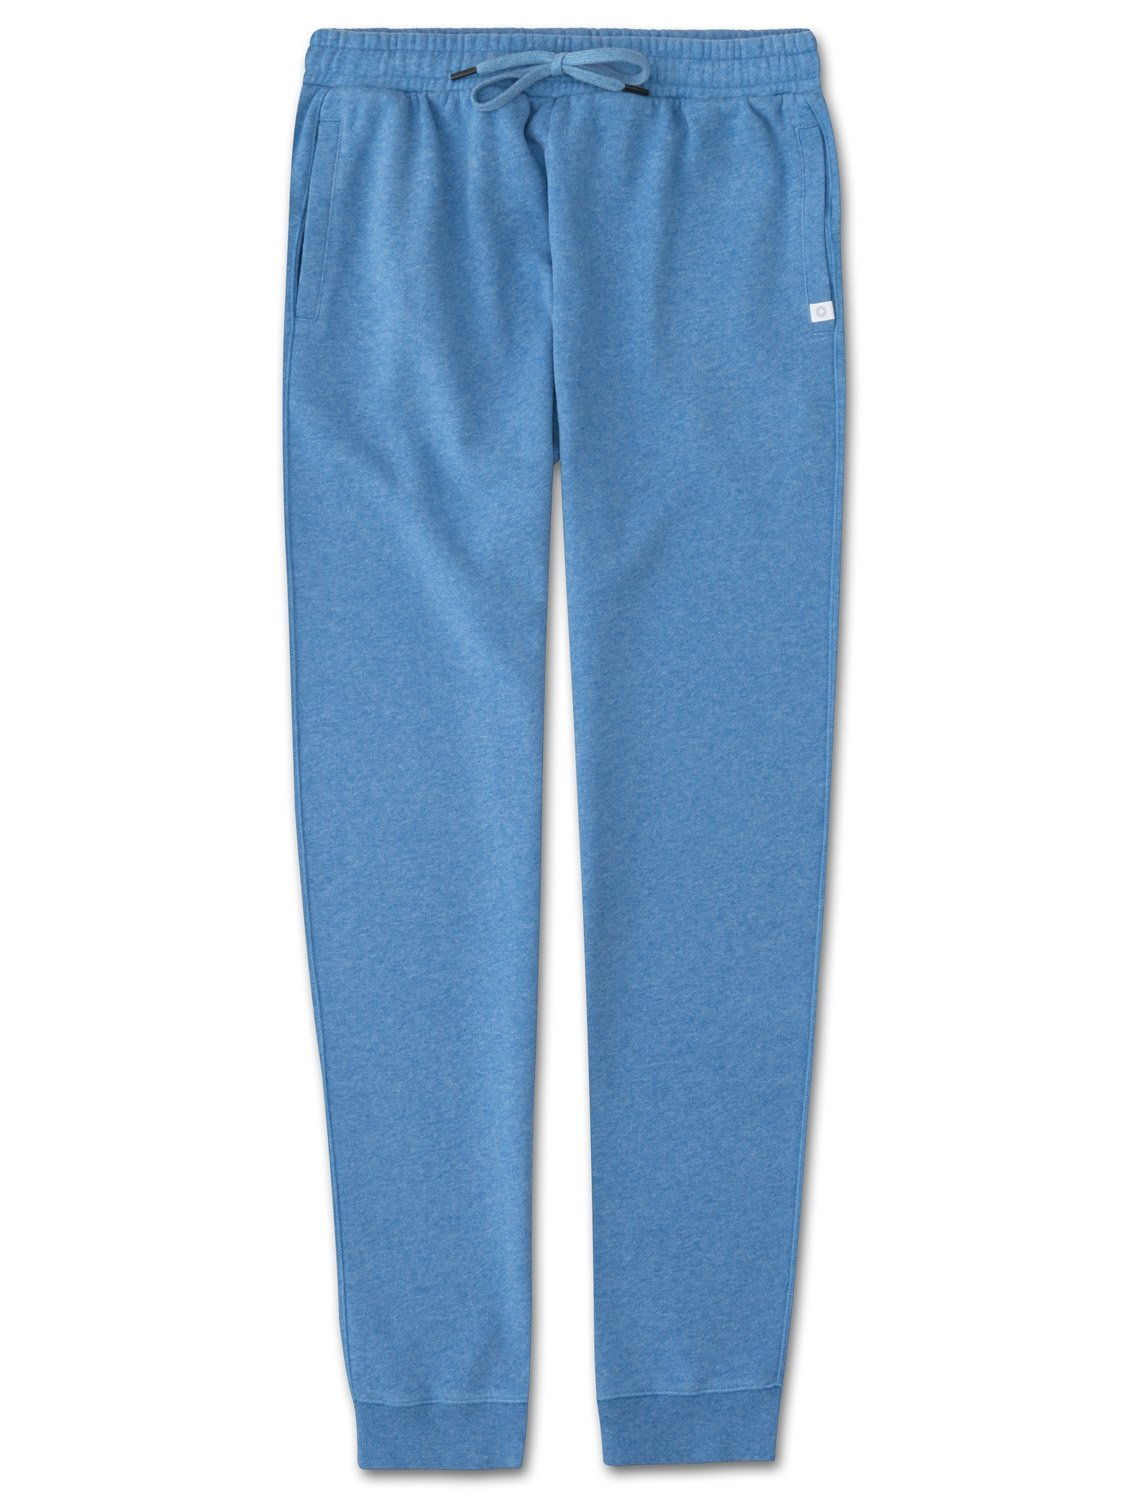 Men's Sweatpants Devon 2 Loopback Cotton Blue